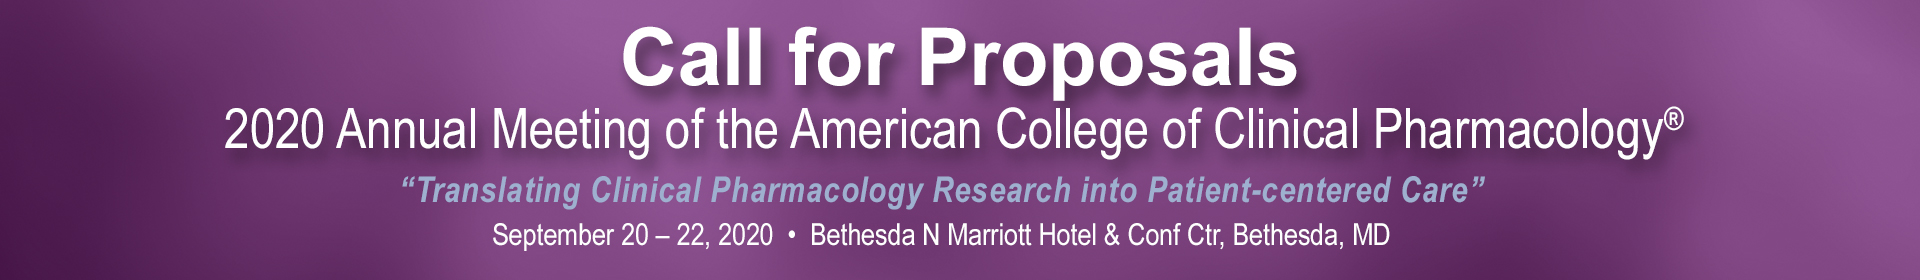 2020 ACCP Annual Meeting - Proposals & Faculty Portal Event Banner